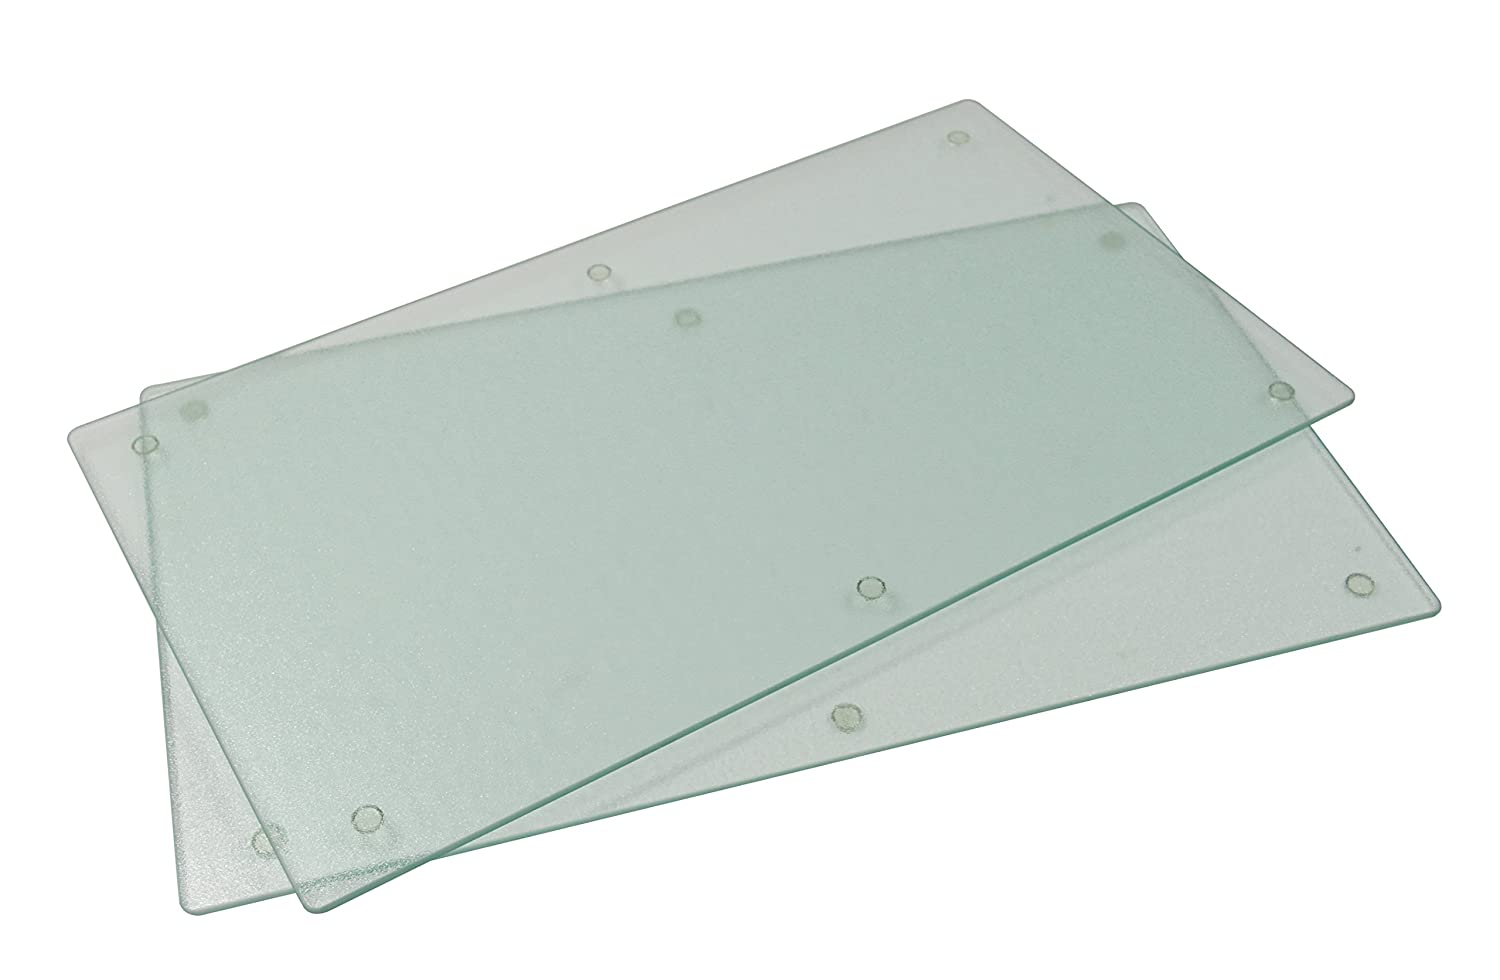 Jocca 2-in-1 Glass Hob Cover/Chopping Board, Transparent, Set of 2 ...